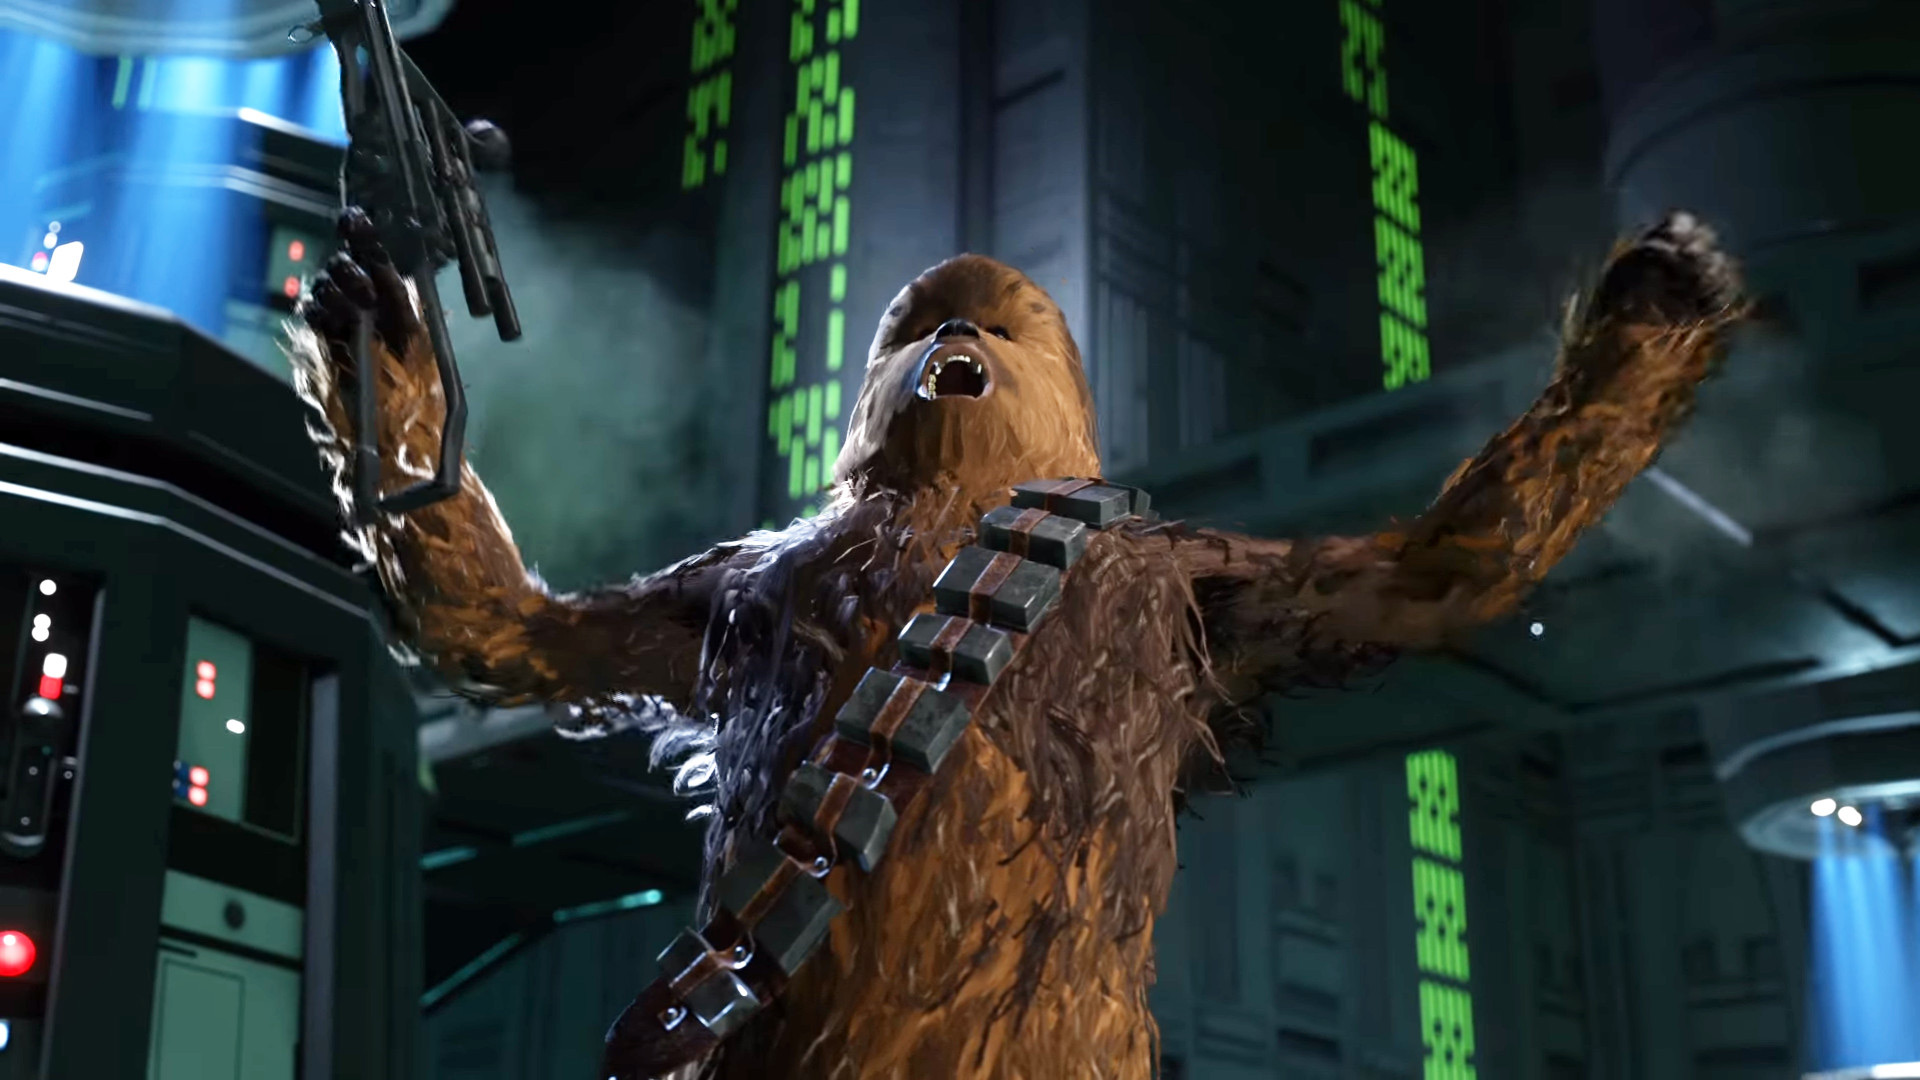 Star Wars Battlefront Chewbacca Roar